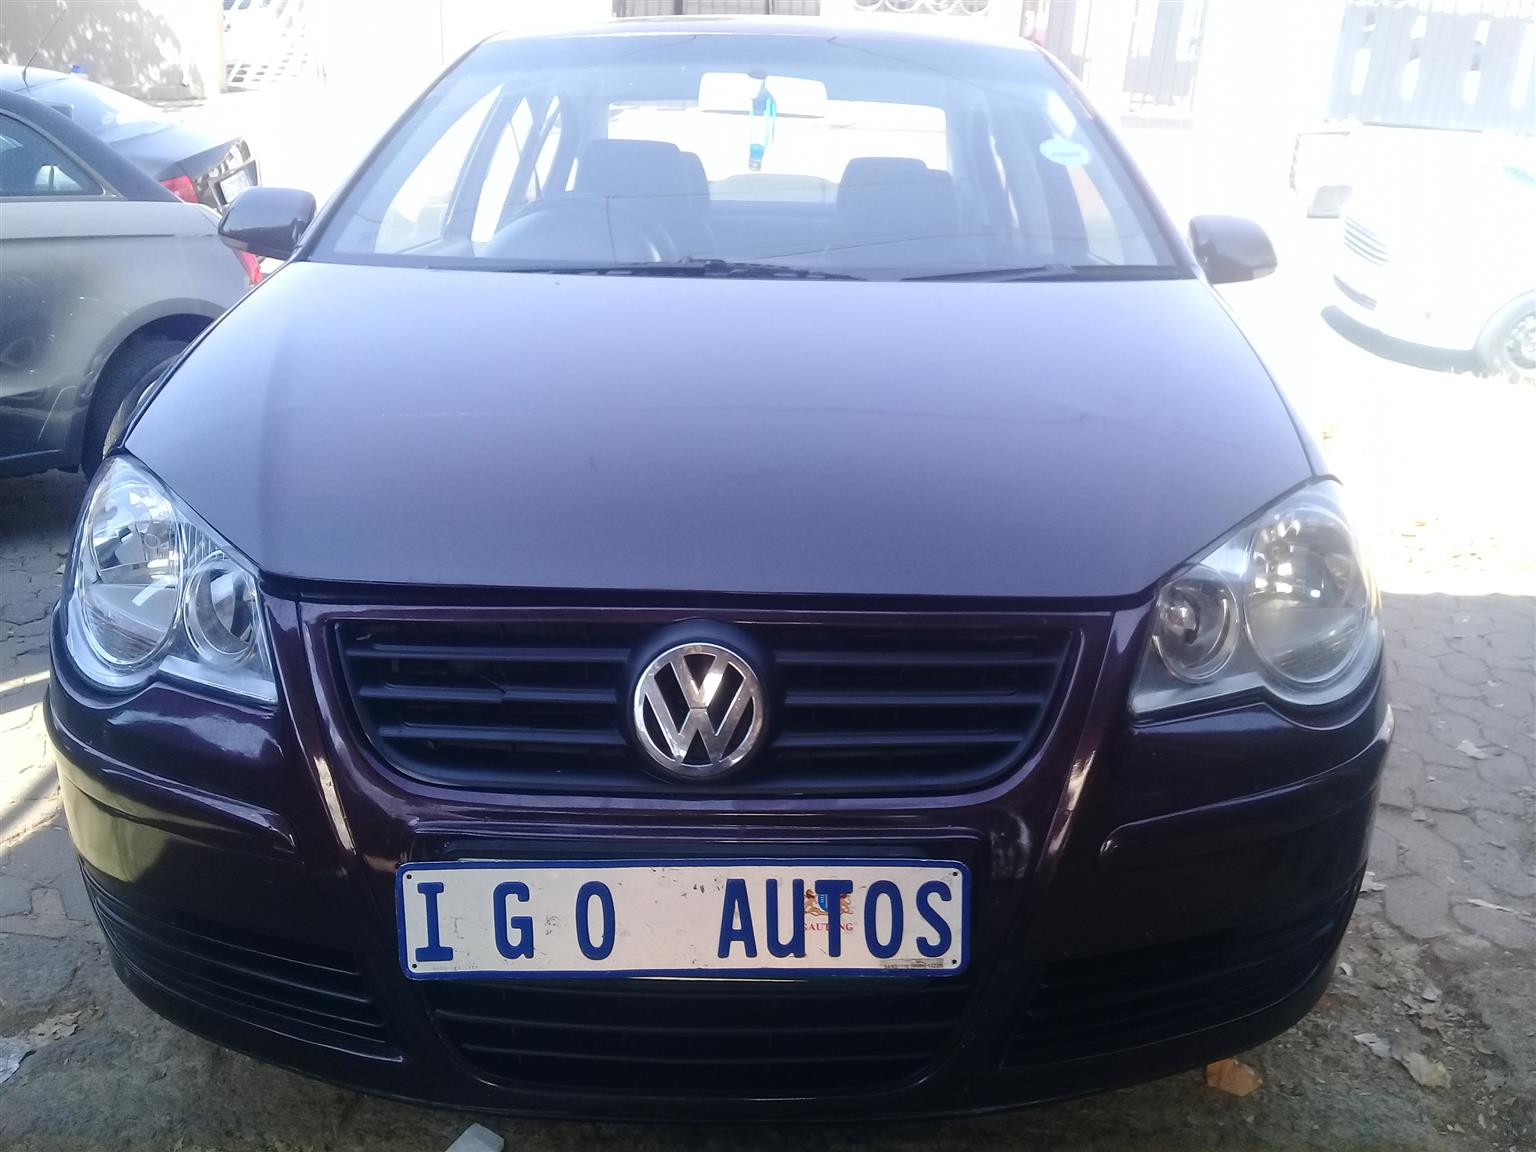 2003 Vw Polo Classic 1 6 Comfortline Junk Mail